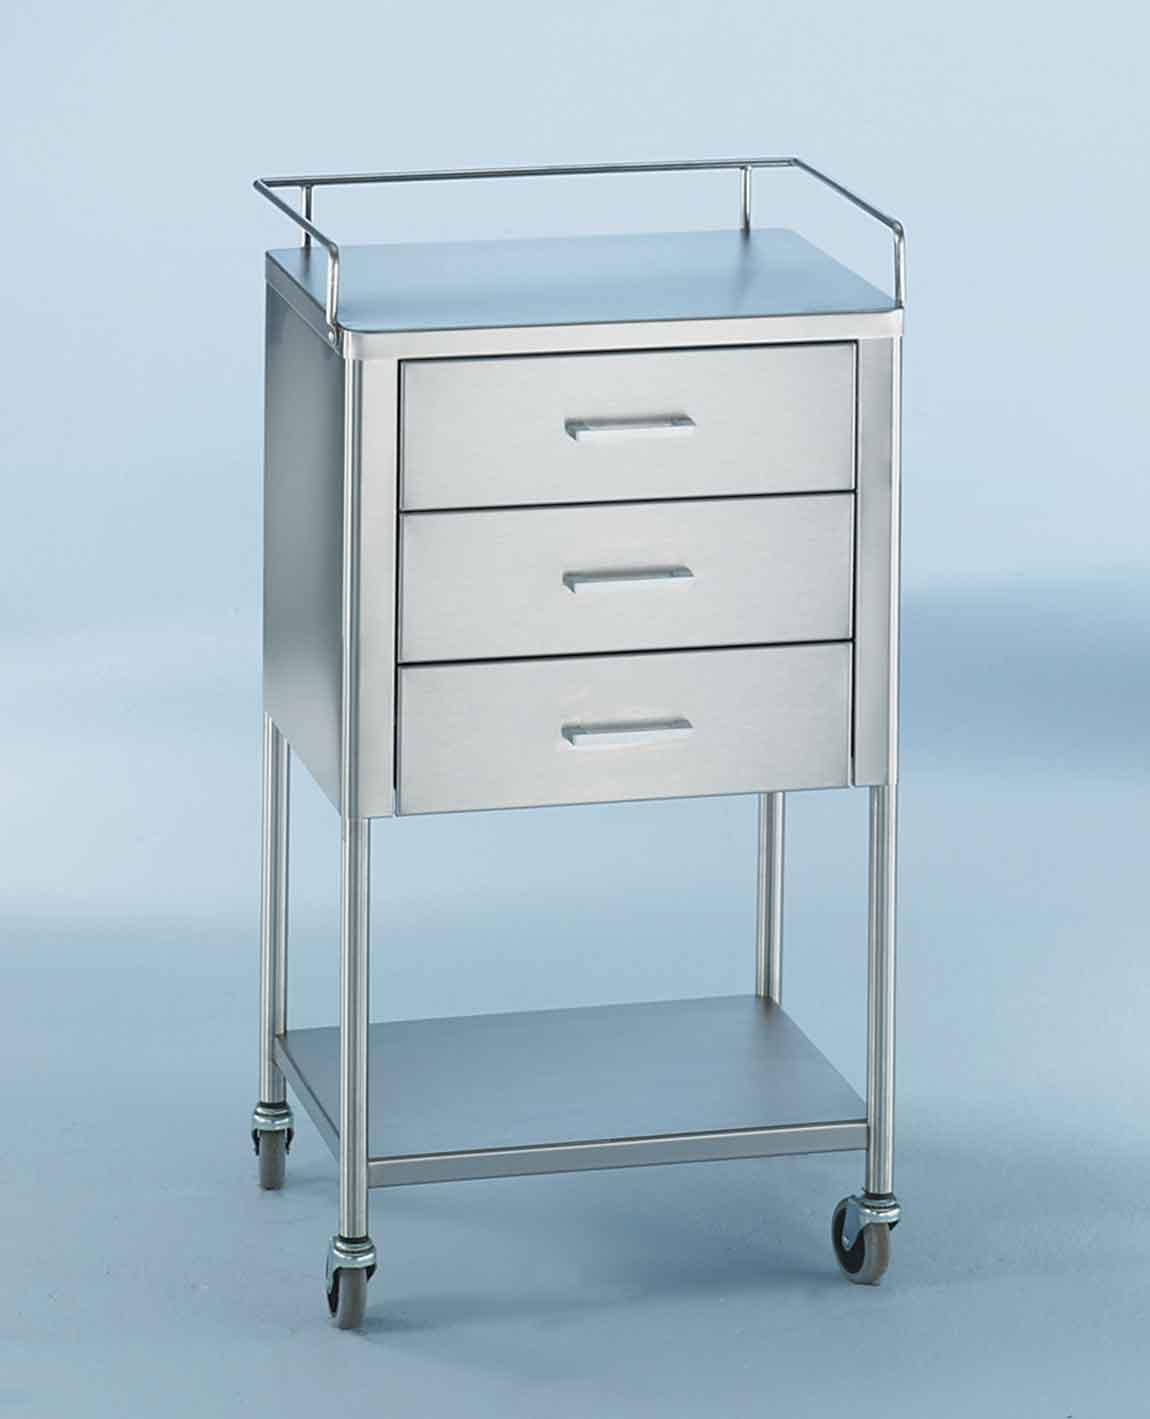 Anesthesia/Utility table